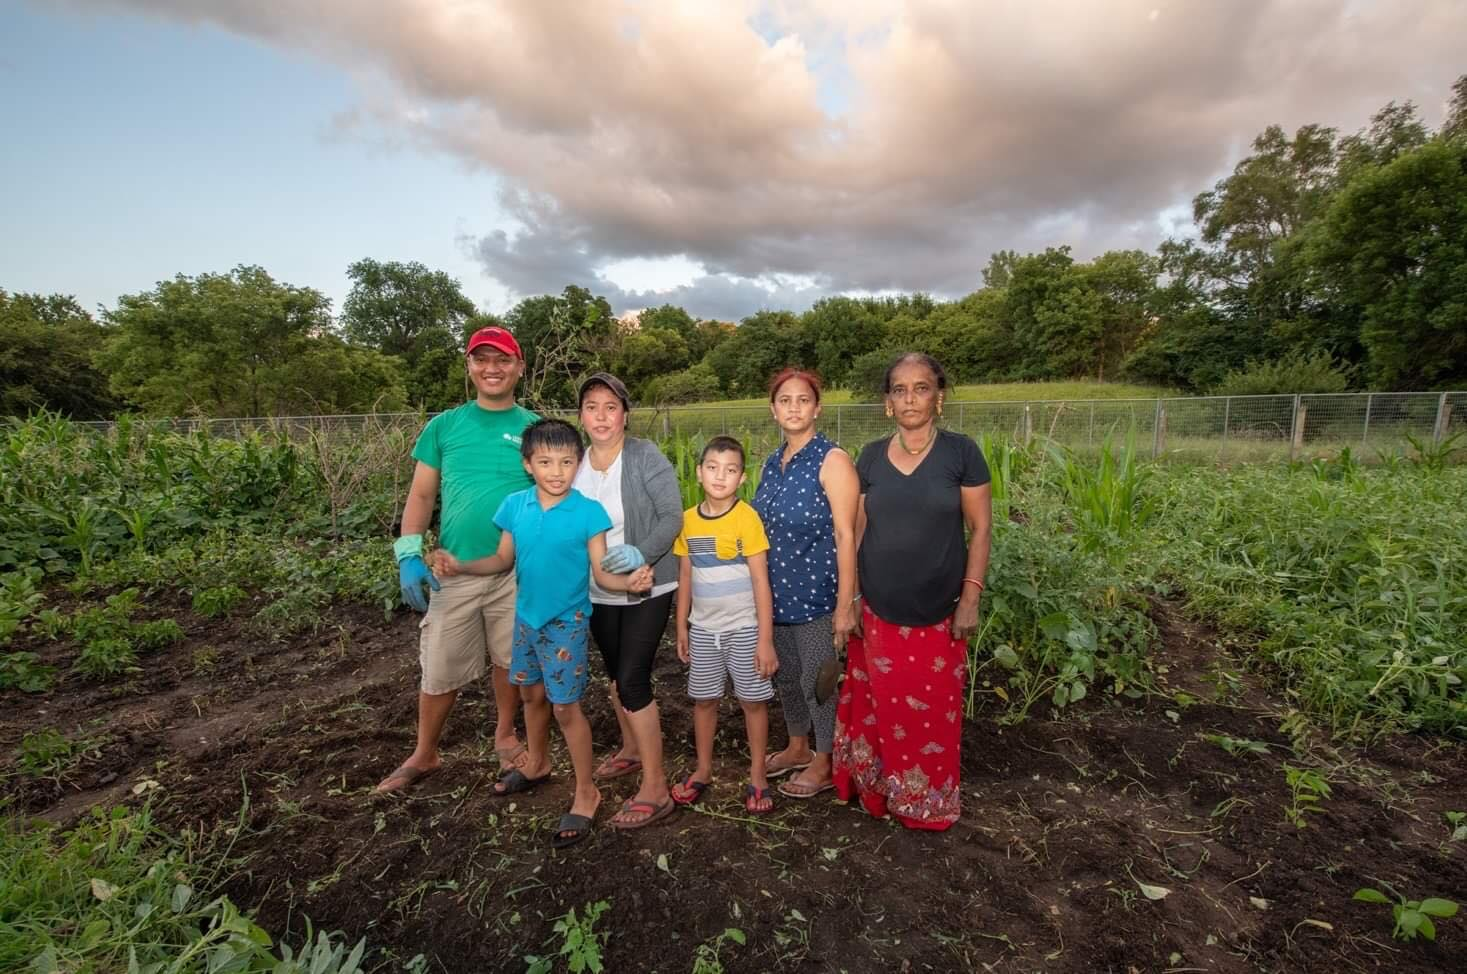 Himal Gurung (at far left) and Indra Gurung (third from far left) with relatives at Global Roots Farm